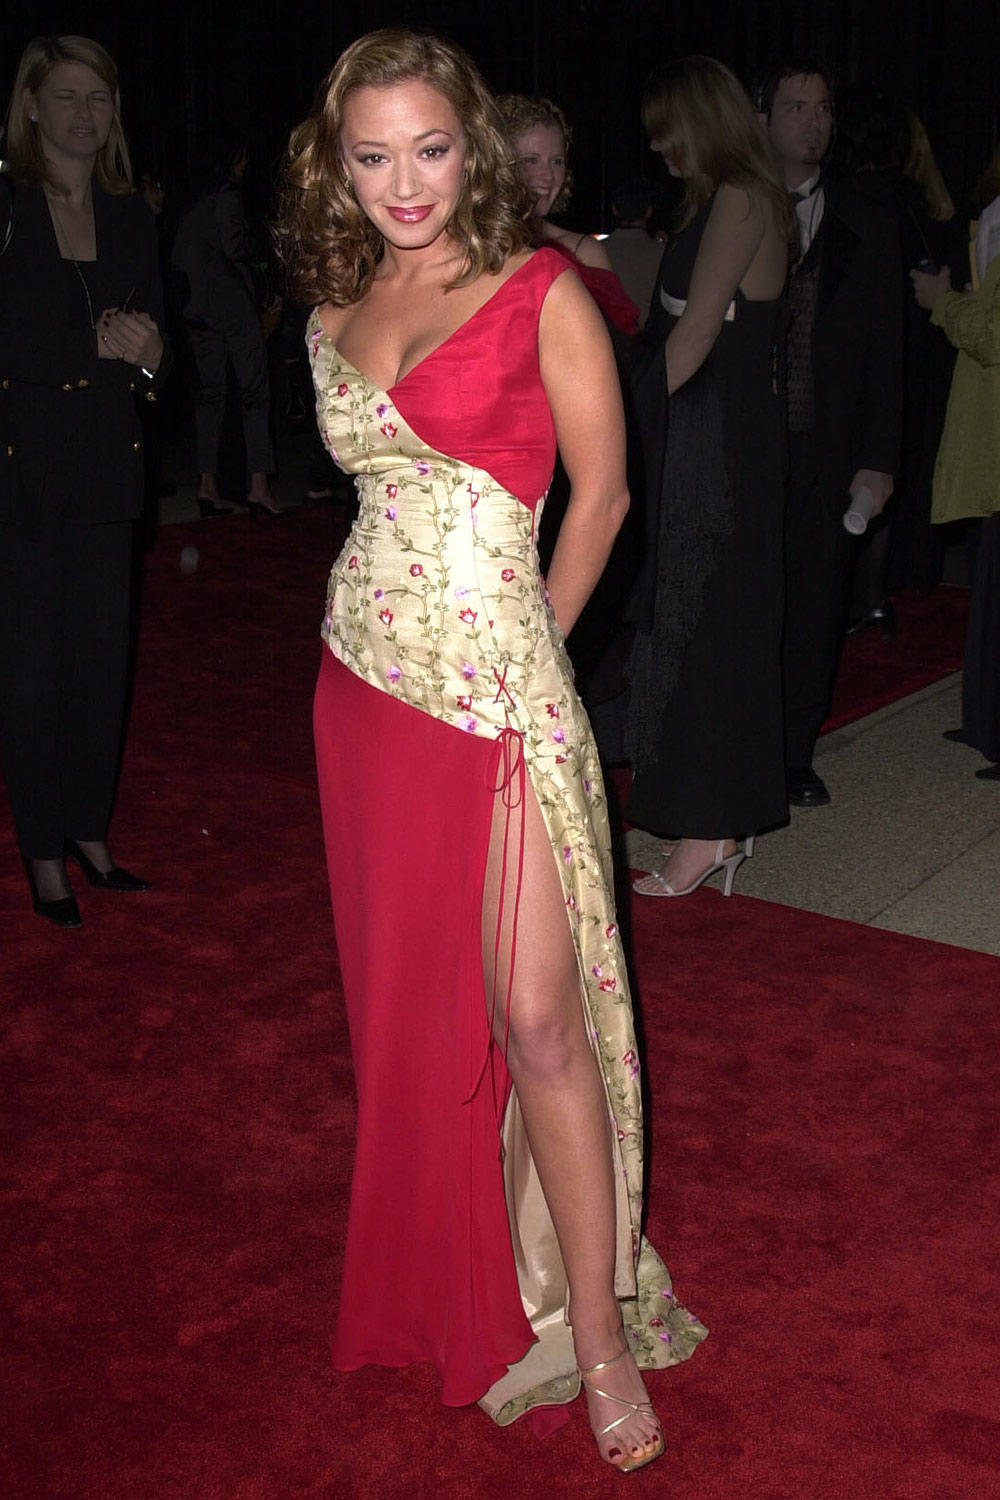 Naked pictures of leah remini photos 42